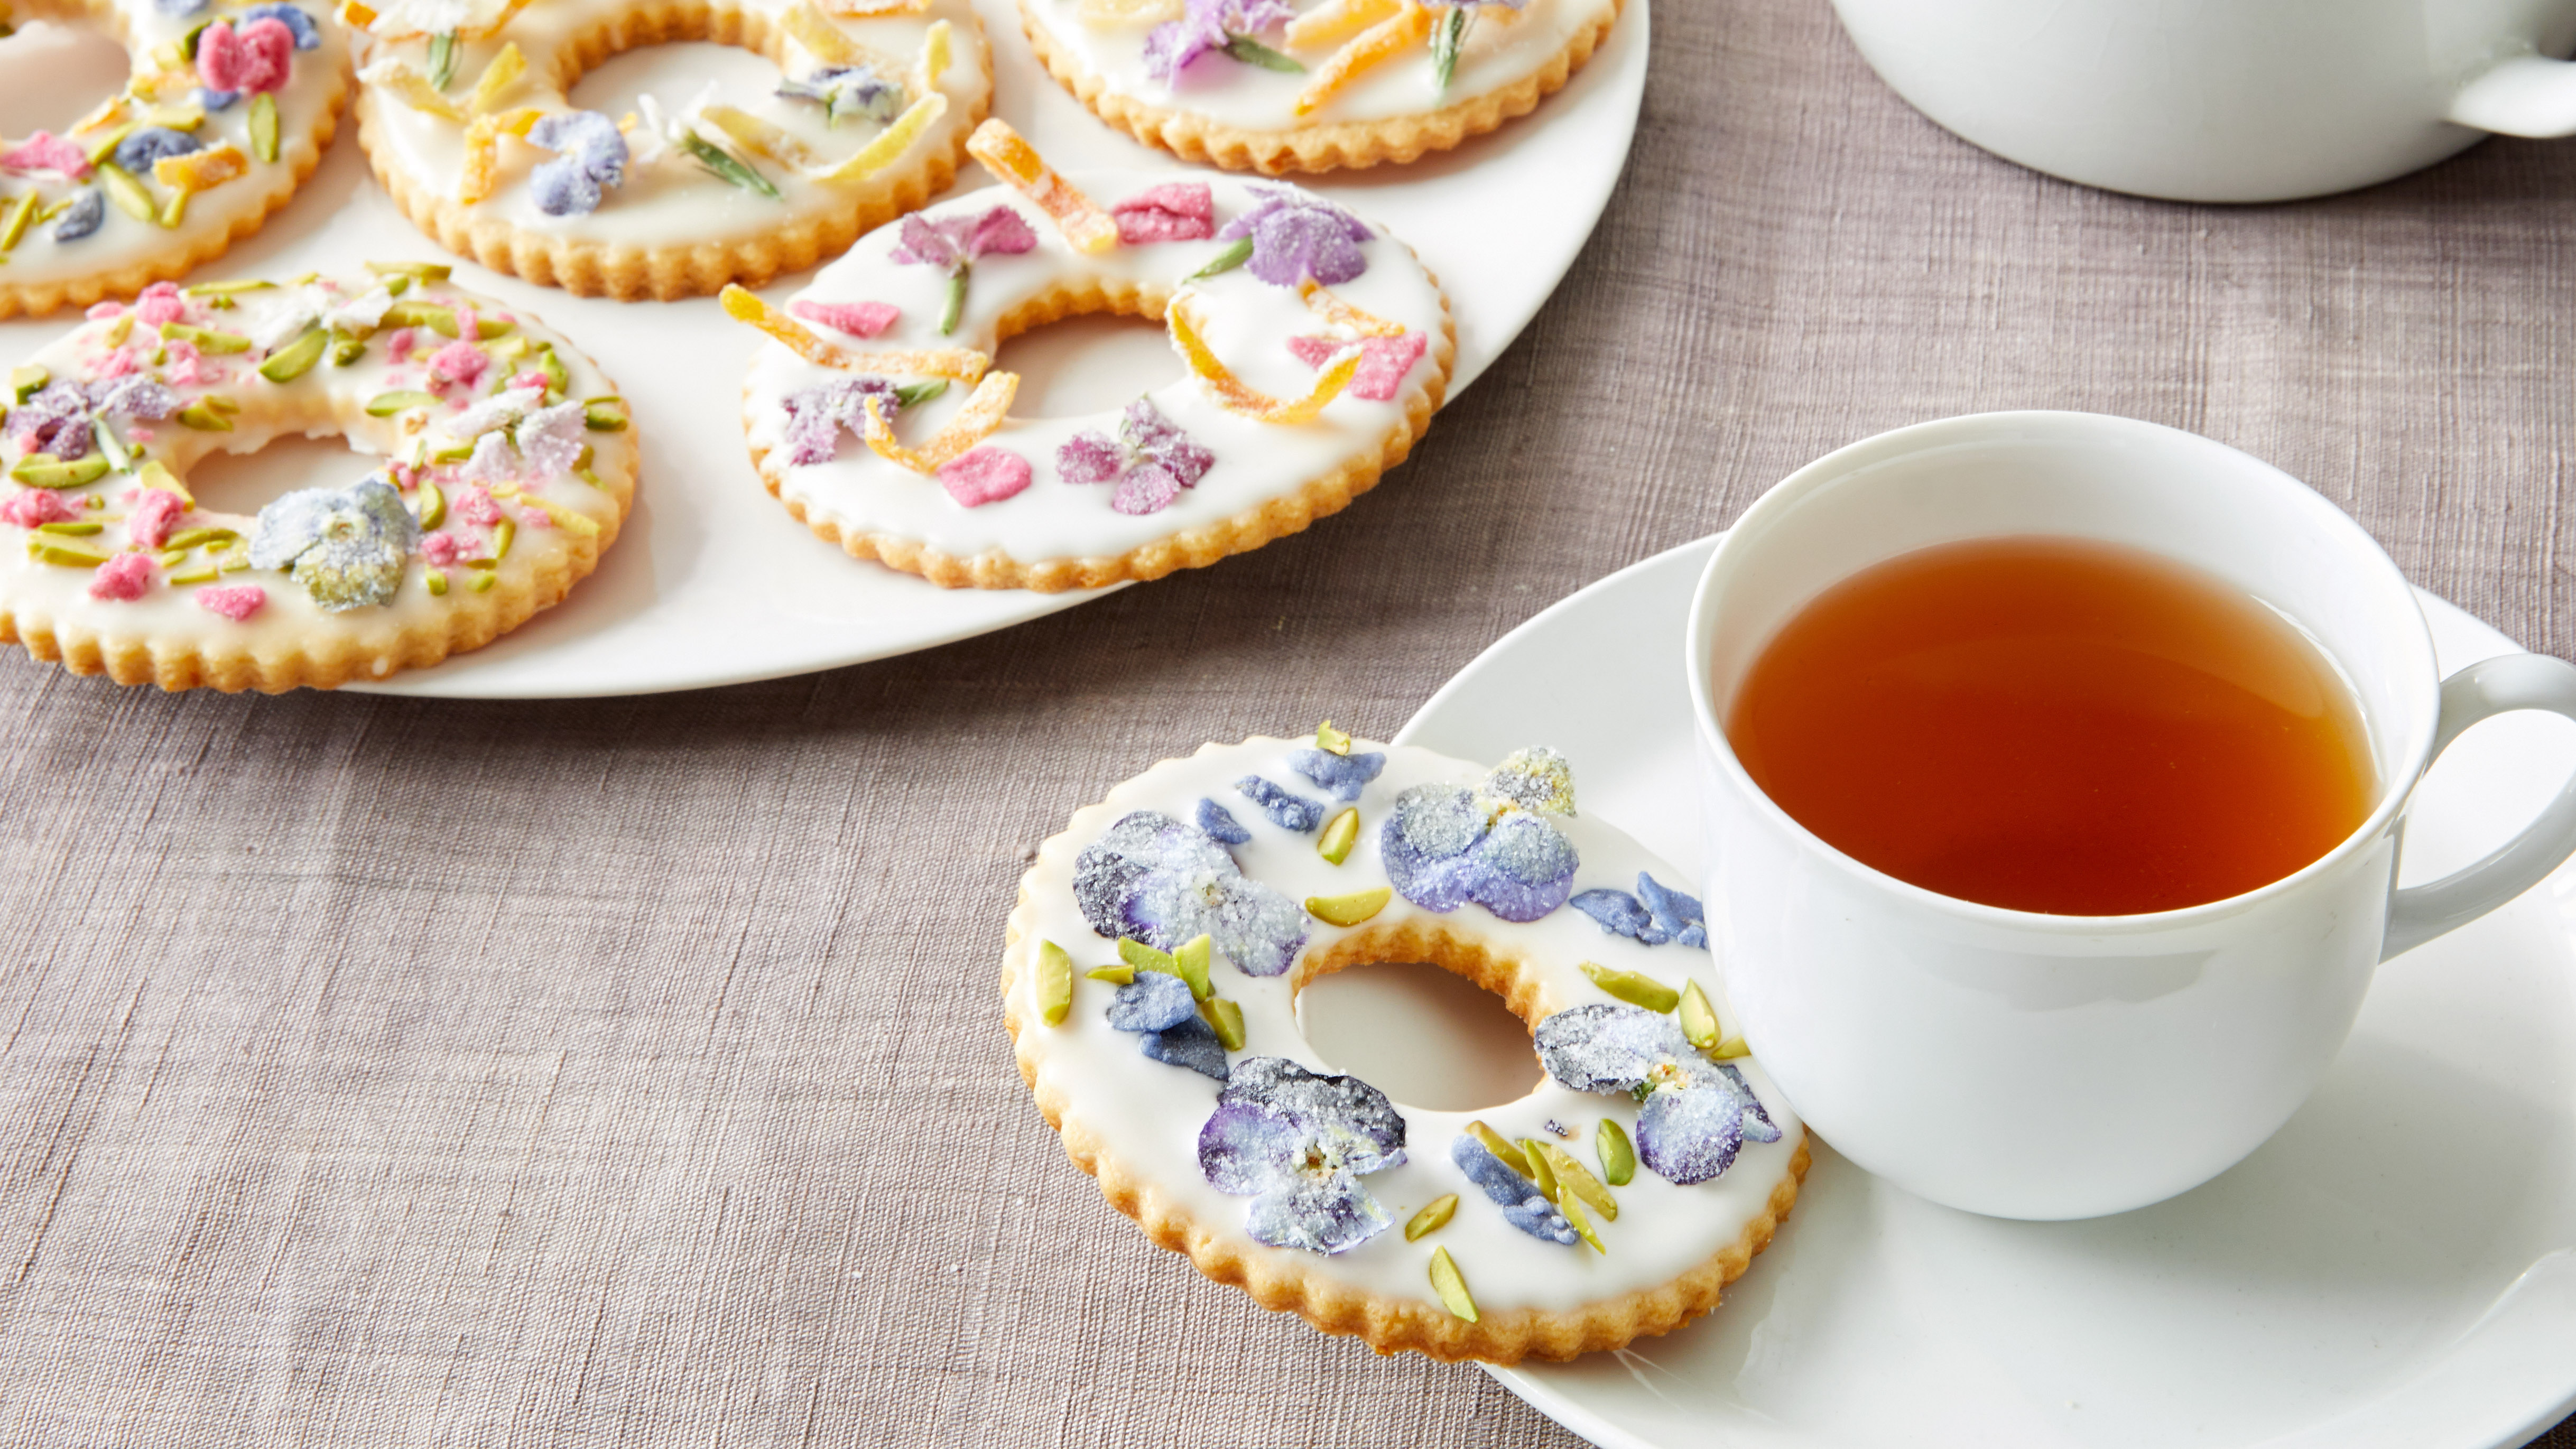 Martha Makes Sugar Cookies Summery—By Adding Flowers!